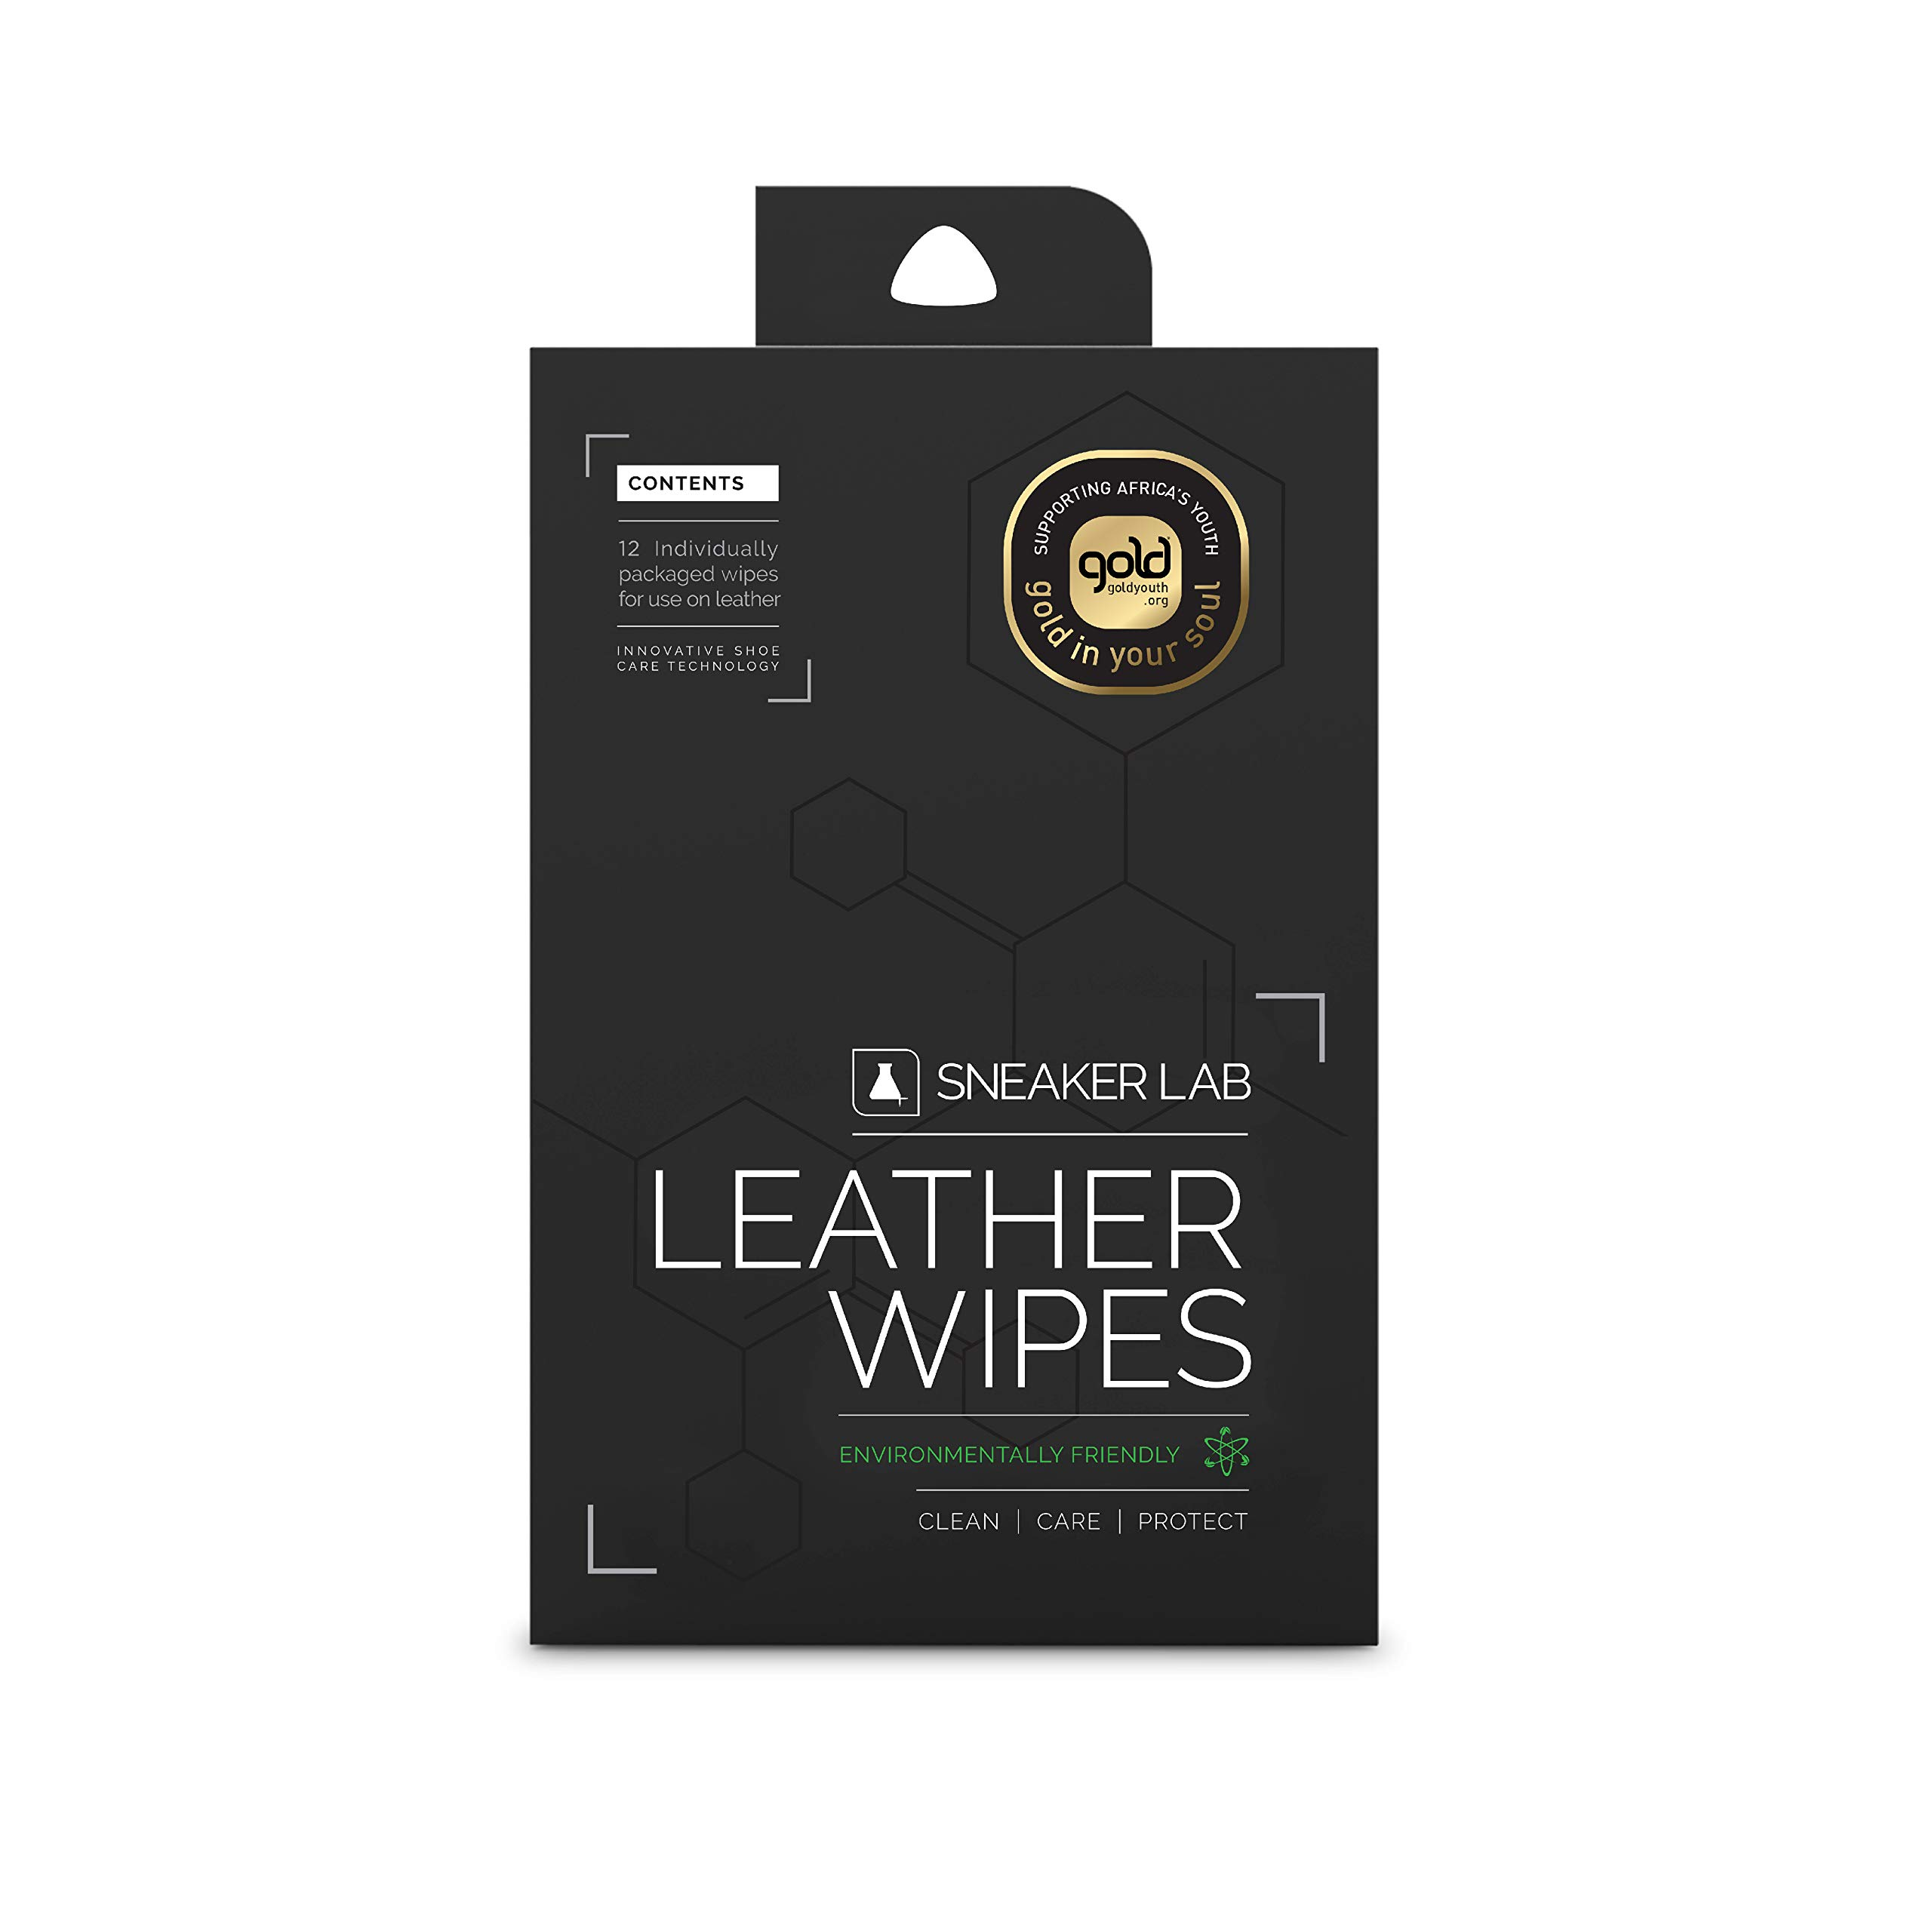 Leather Shoes Wipes By Sneaker LAB For On The Go Cleaning | 12 Individual Wipes Per Pack | Welcome To The Future Of Sneaker Care by SNEAKER LAB